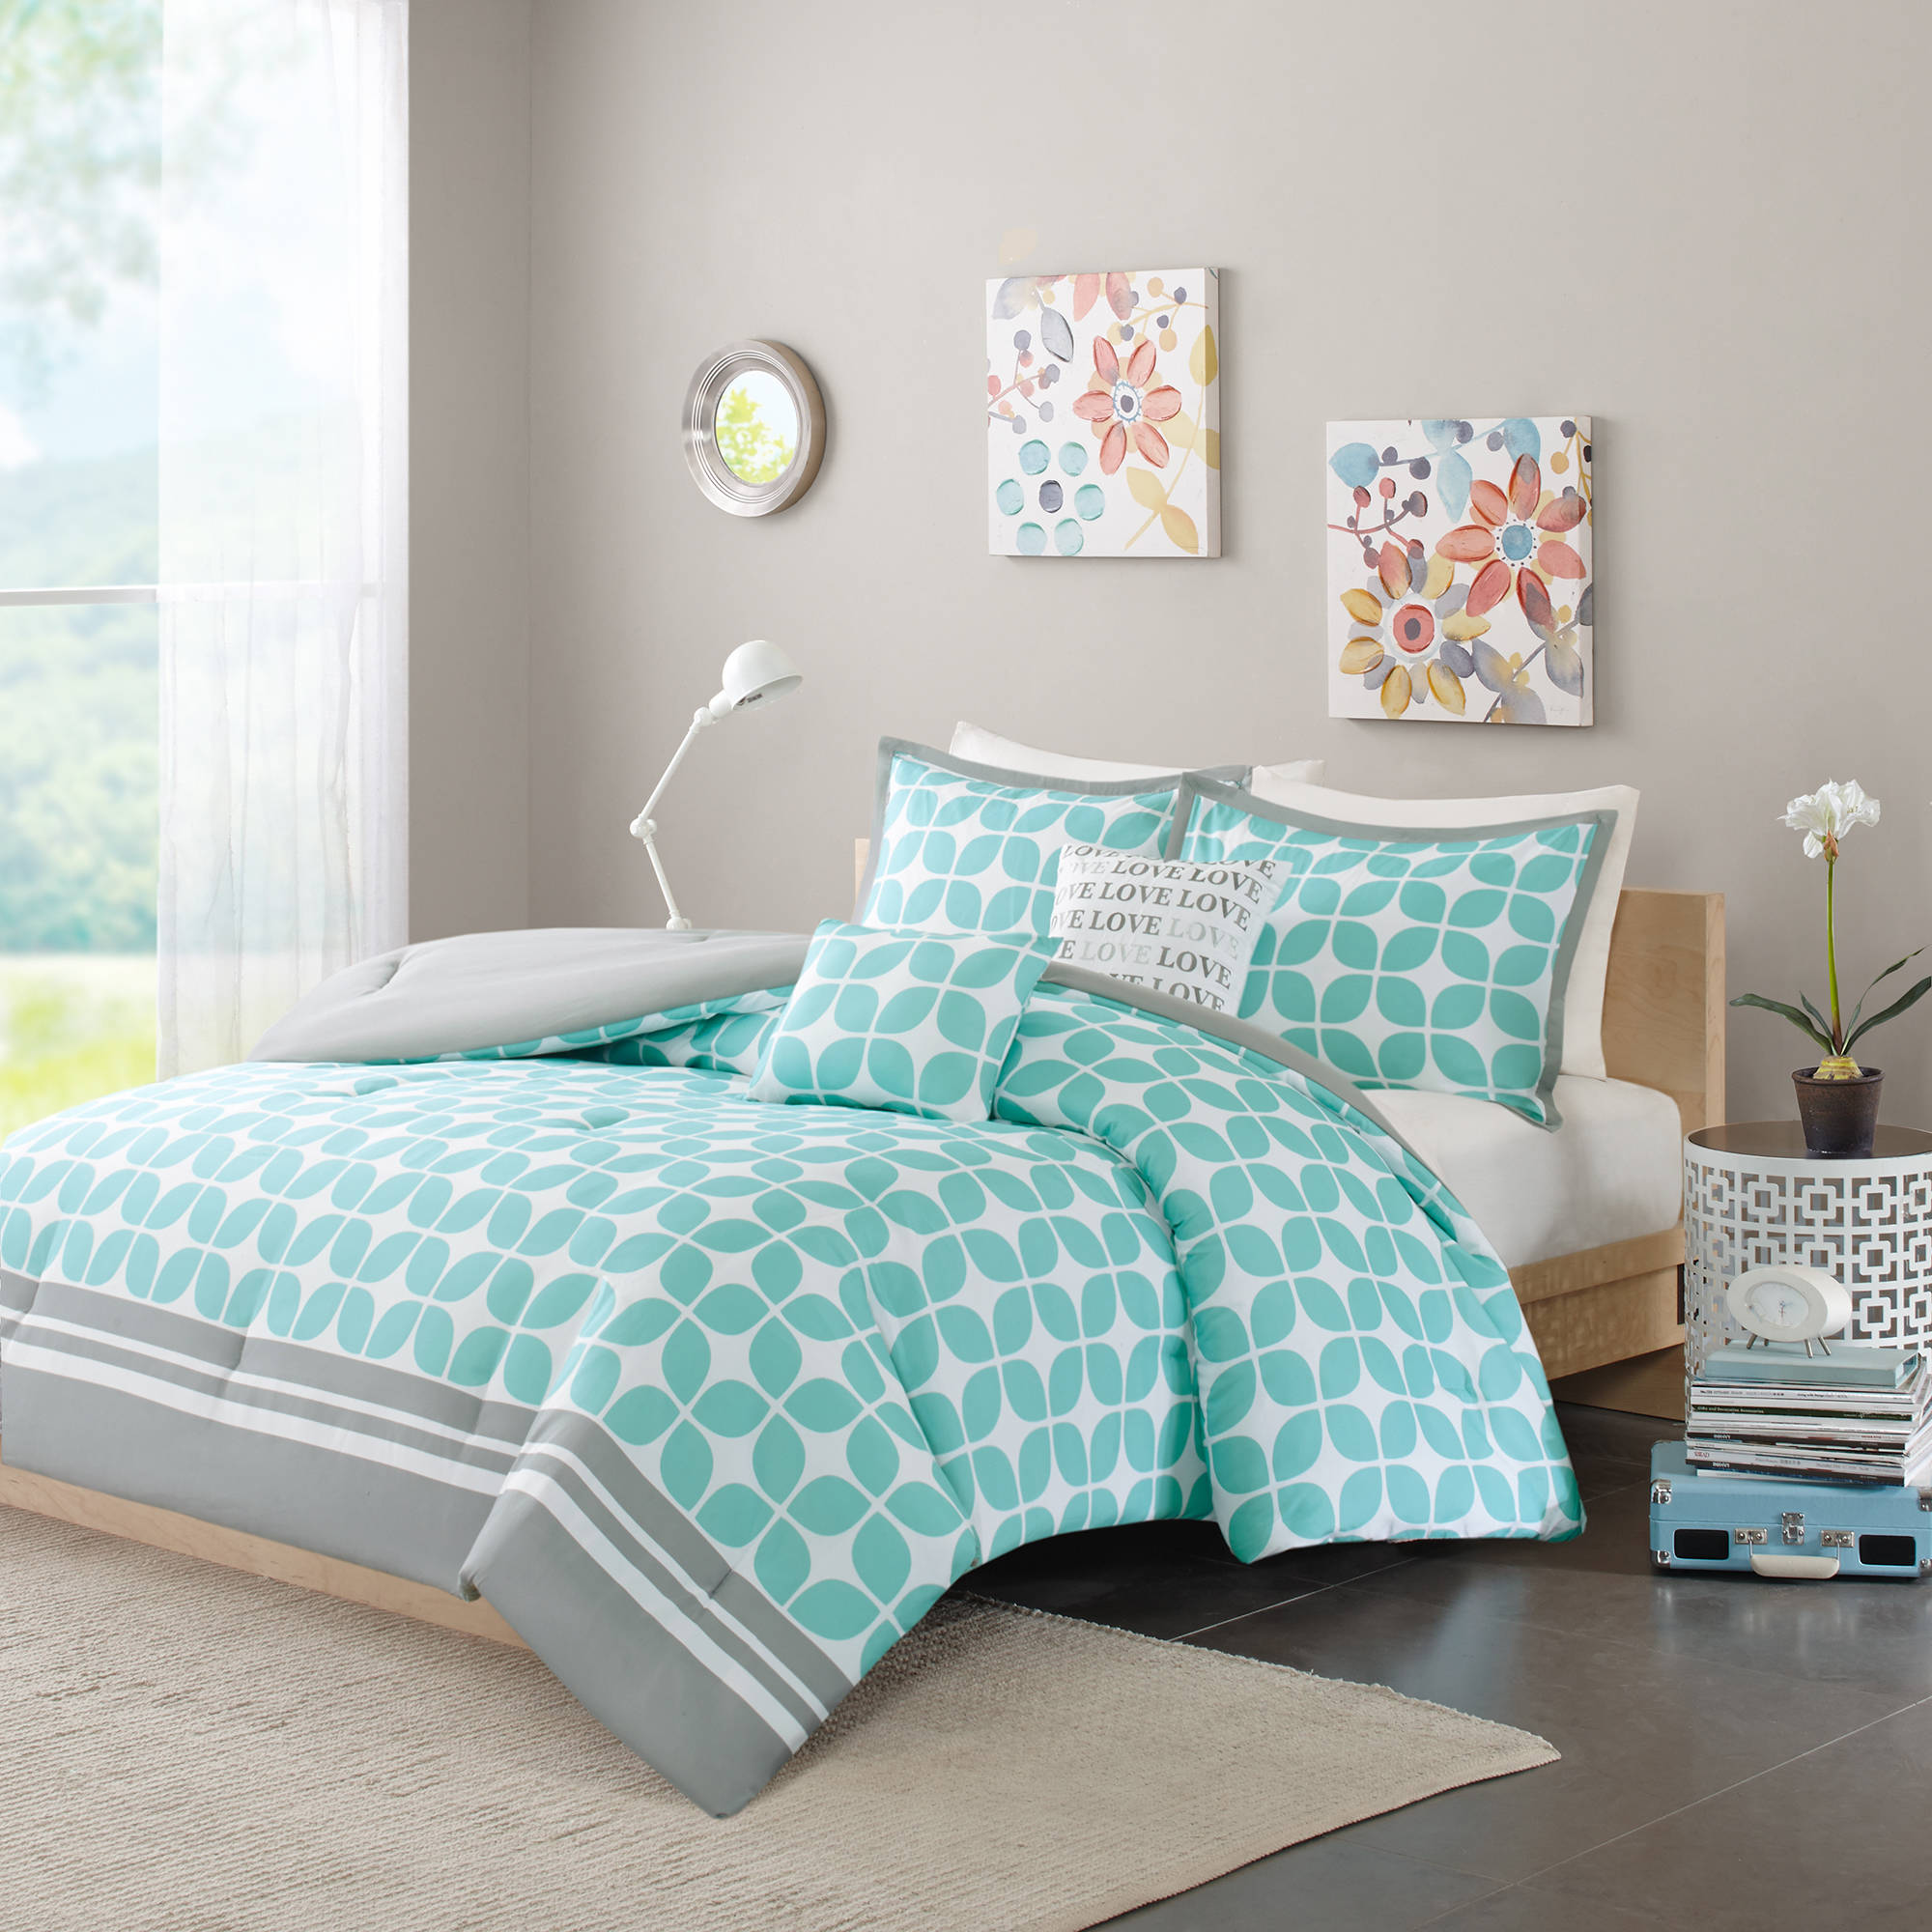 Home Essence Apartment Sonya Comforter Set